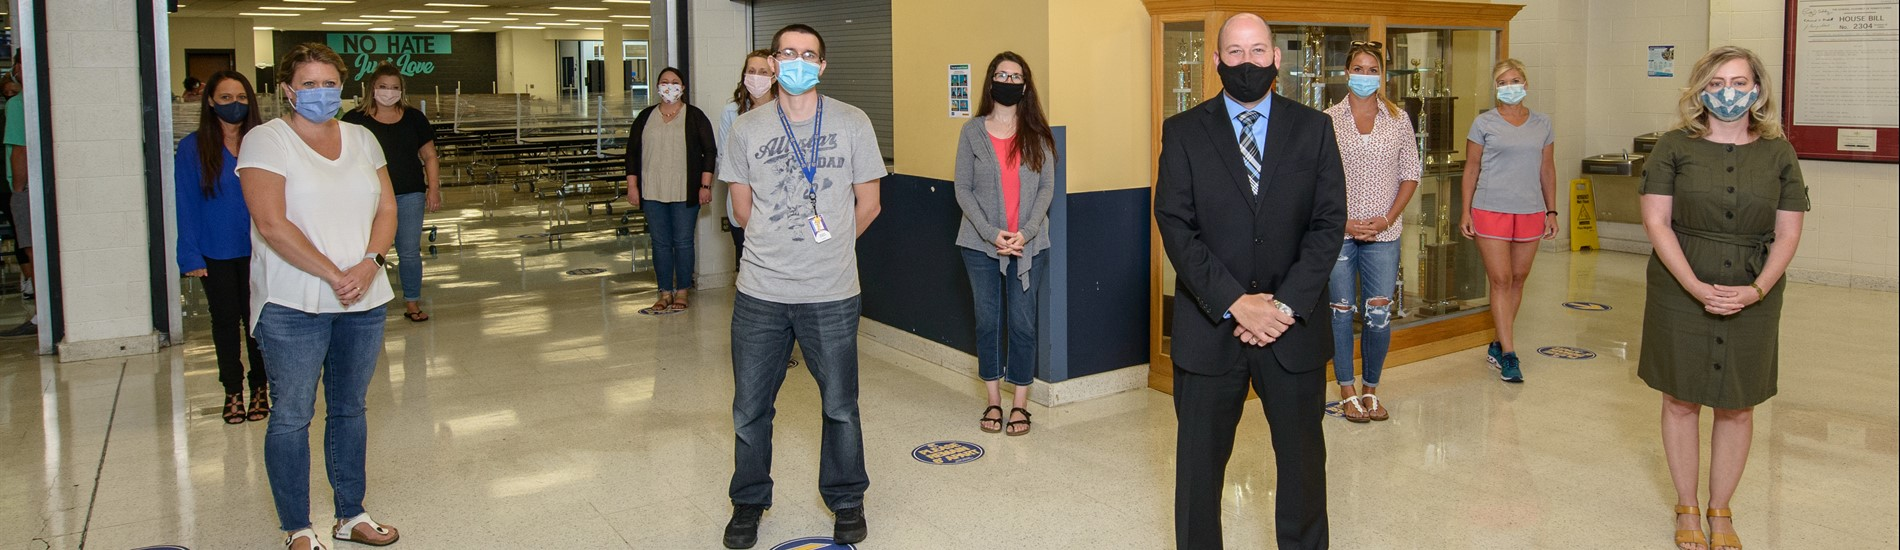 CMHS teachers social distancing and wearing masks